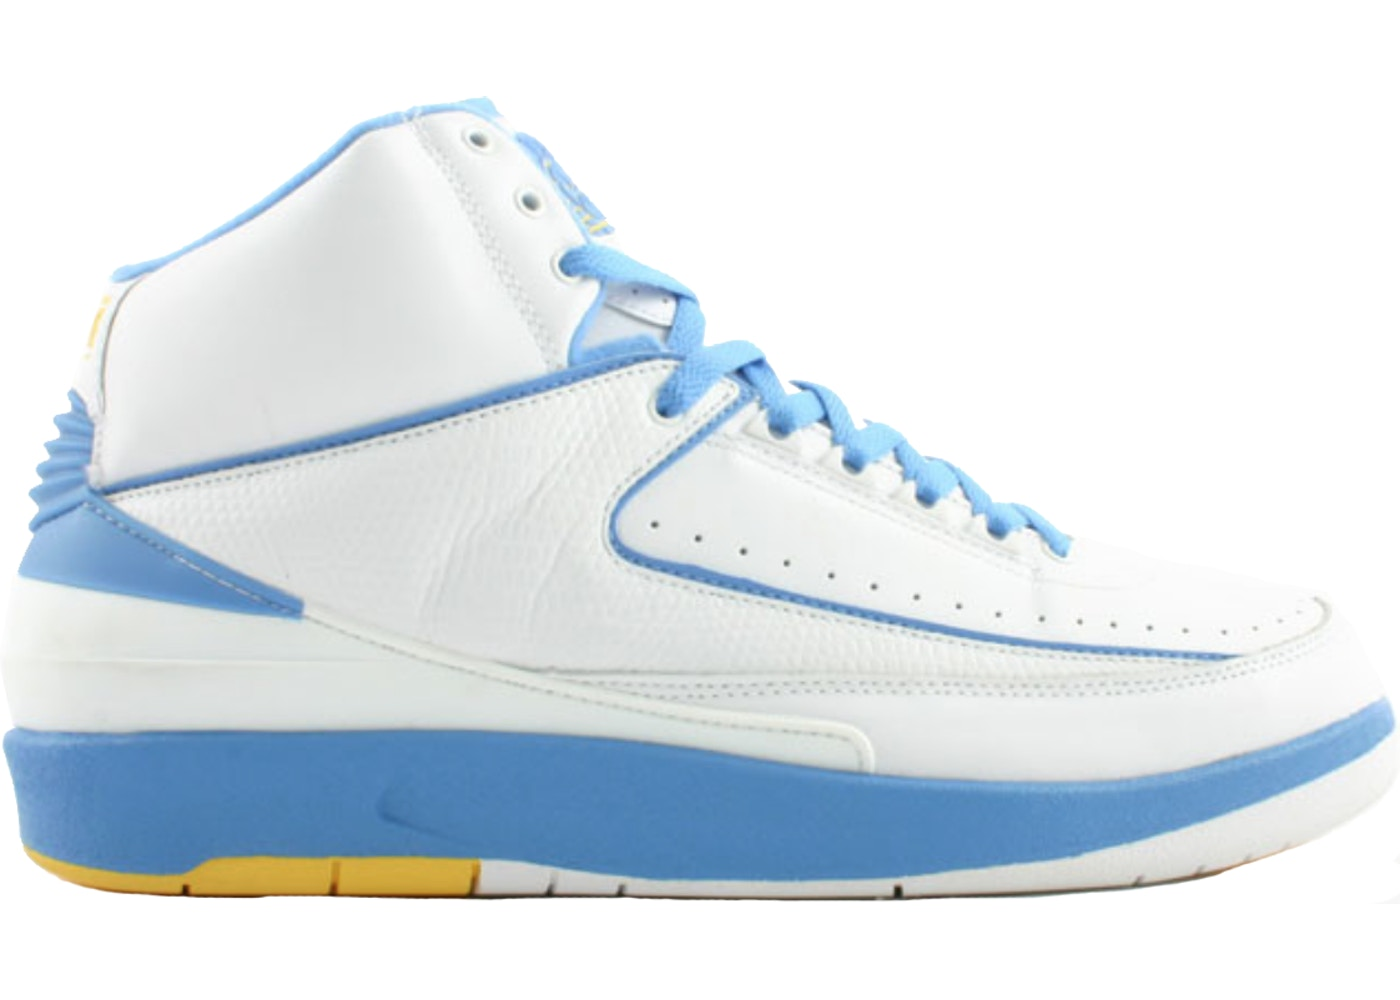 newest 35669 39cb2 Jordan 2 Retro Melo